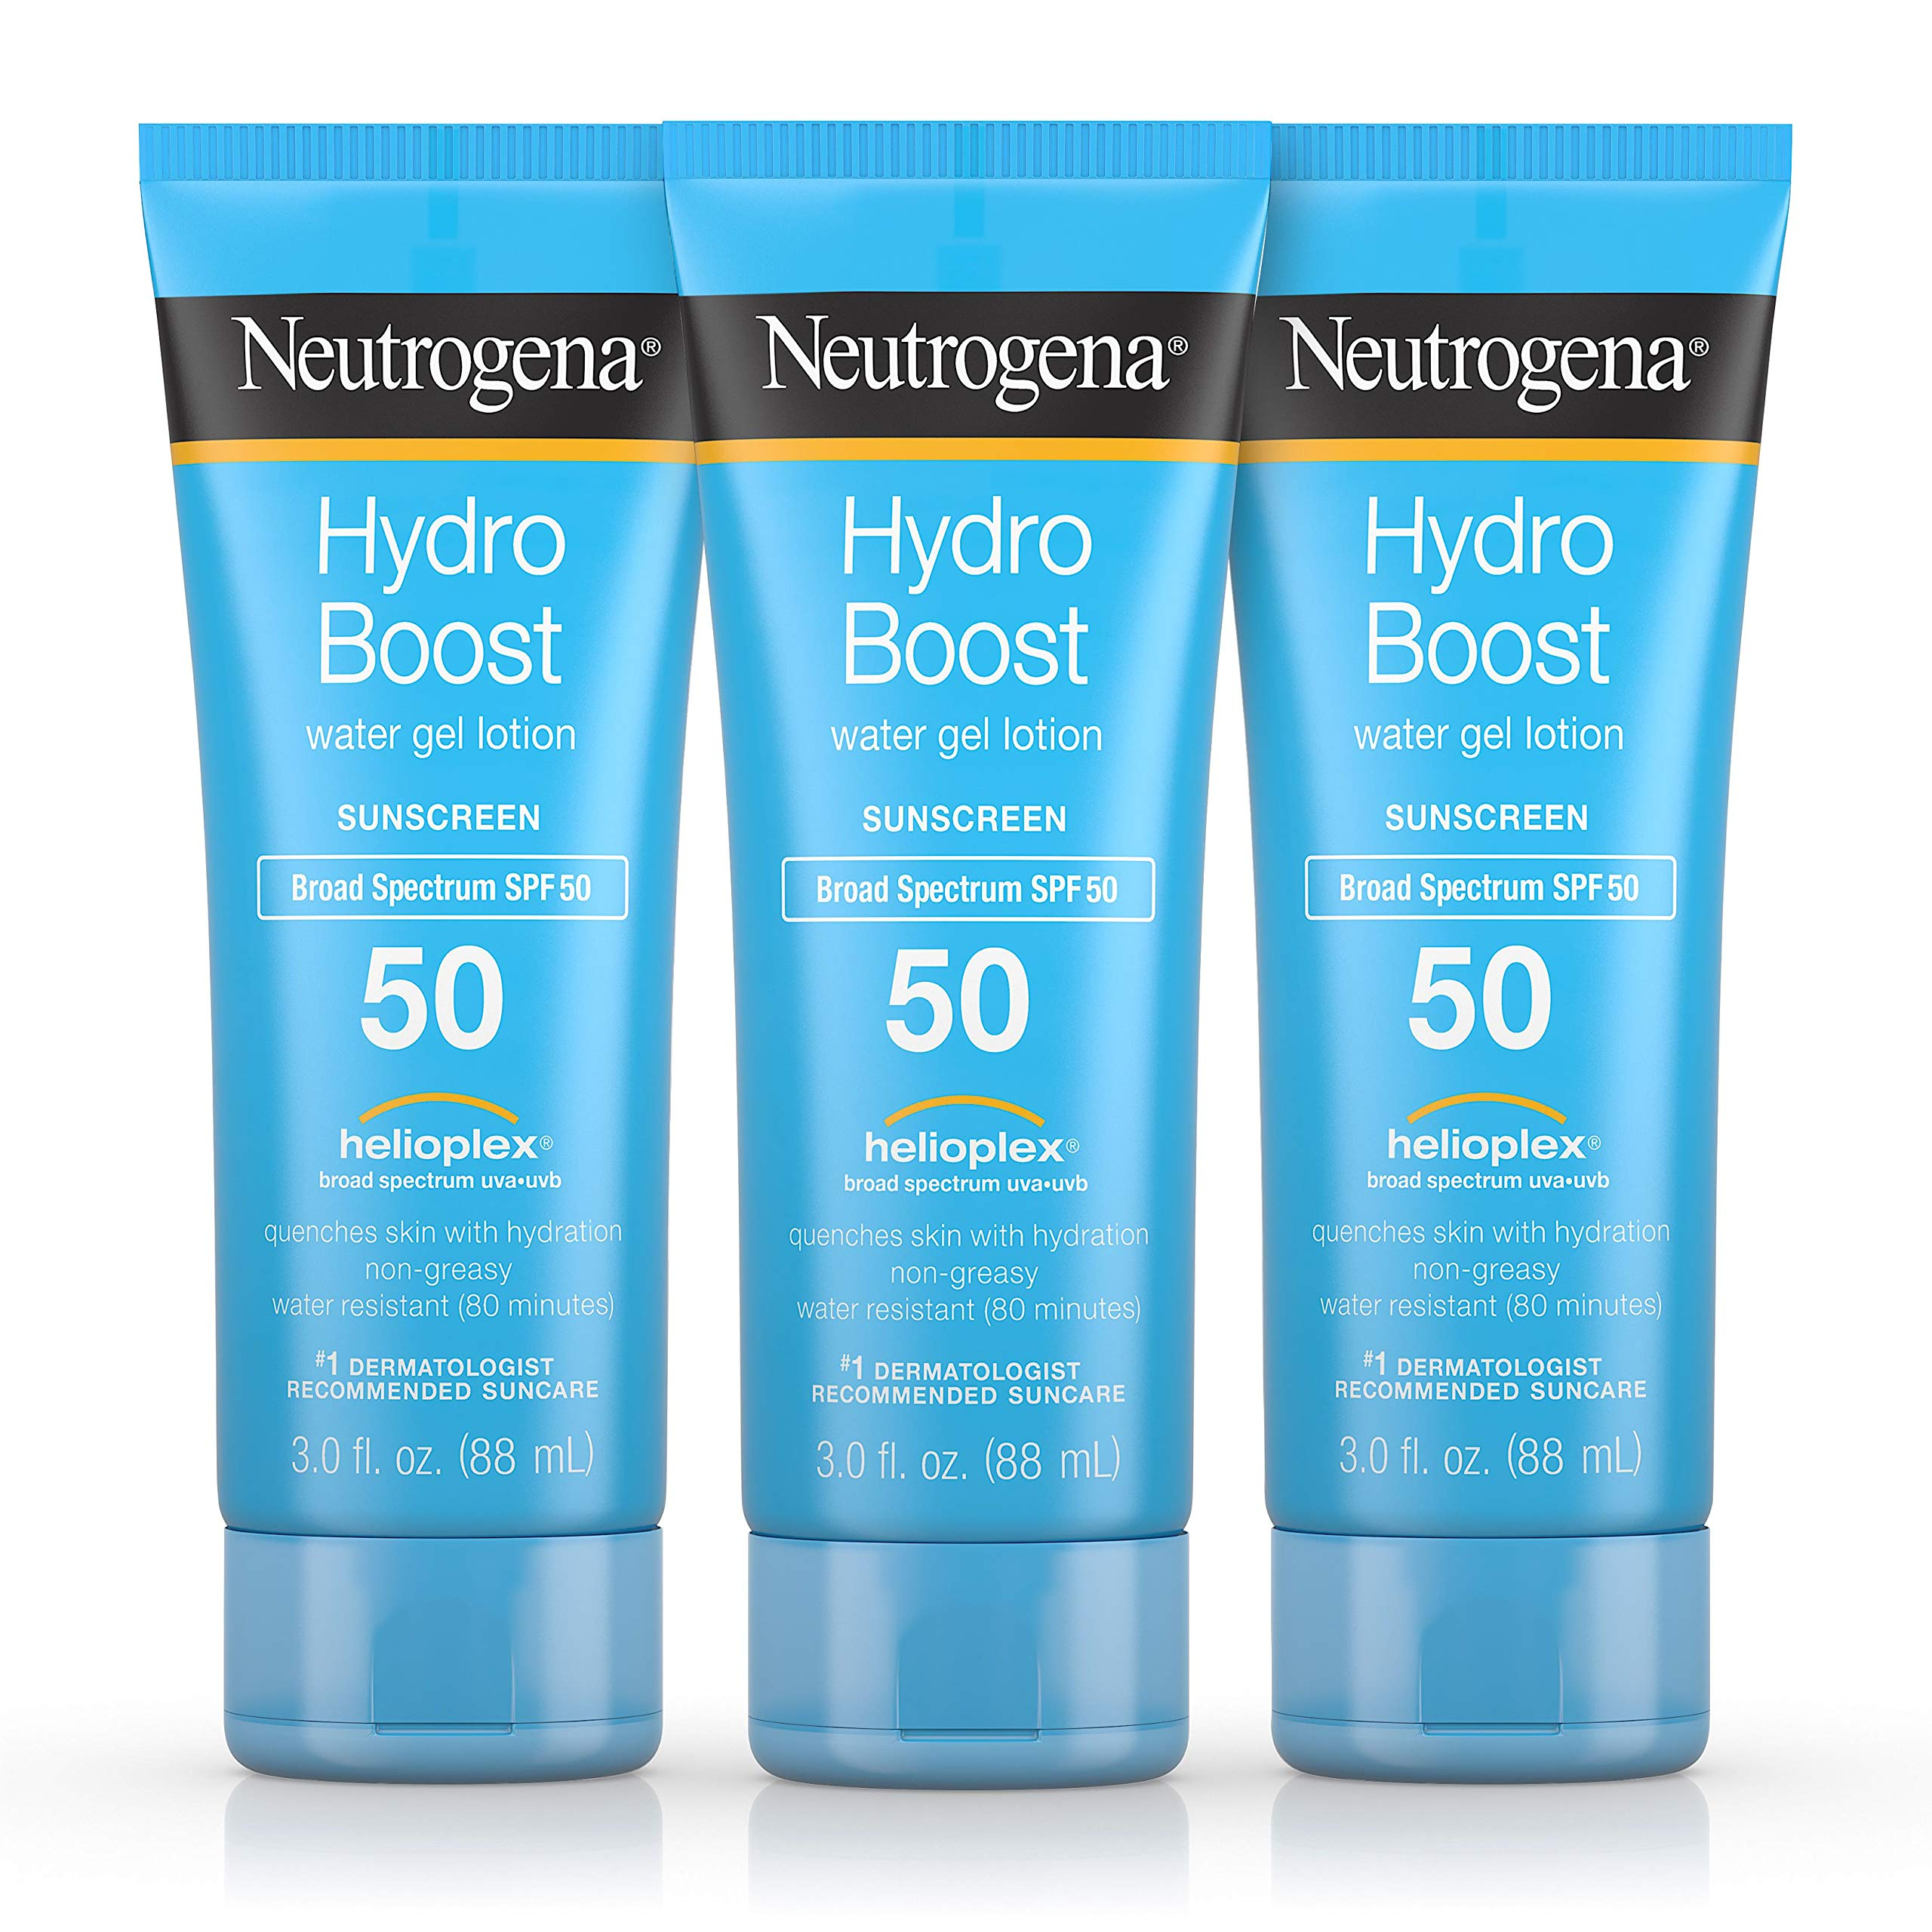 Neutrogena Hydro Boost Water Gel Non-Greasy Moisturizing Sunscreen Lotion with Broad Spectrum SPF 50, Water-Resistant, 3 fl. Oz (Pack of 3) by Neutrogena